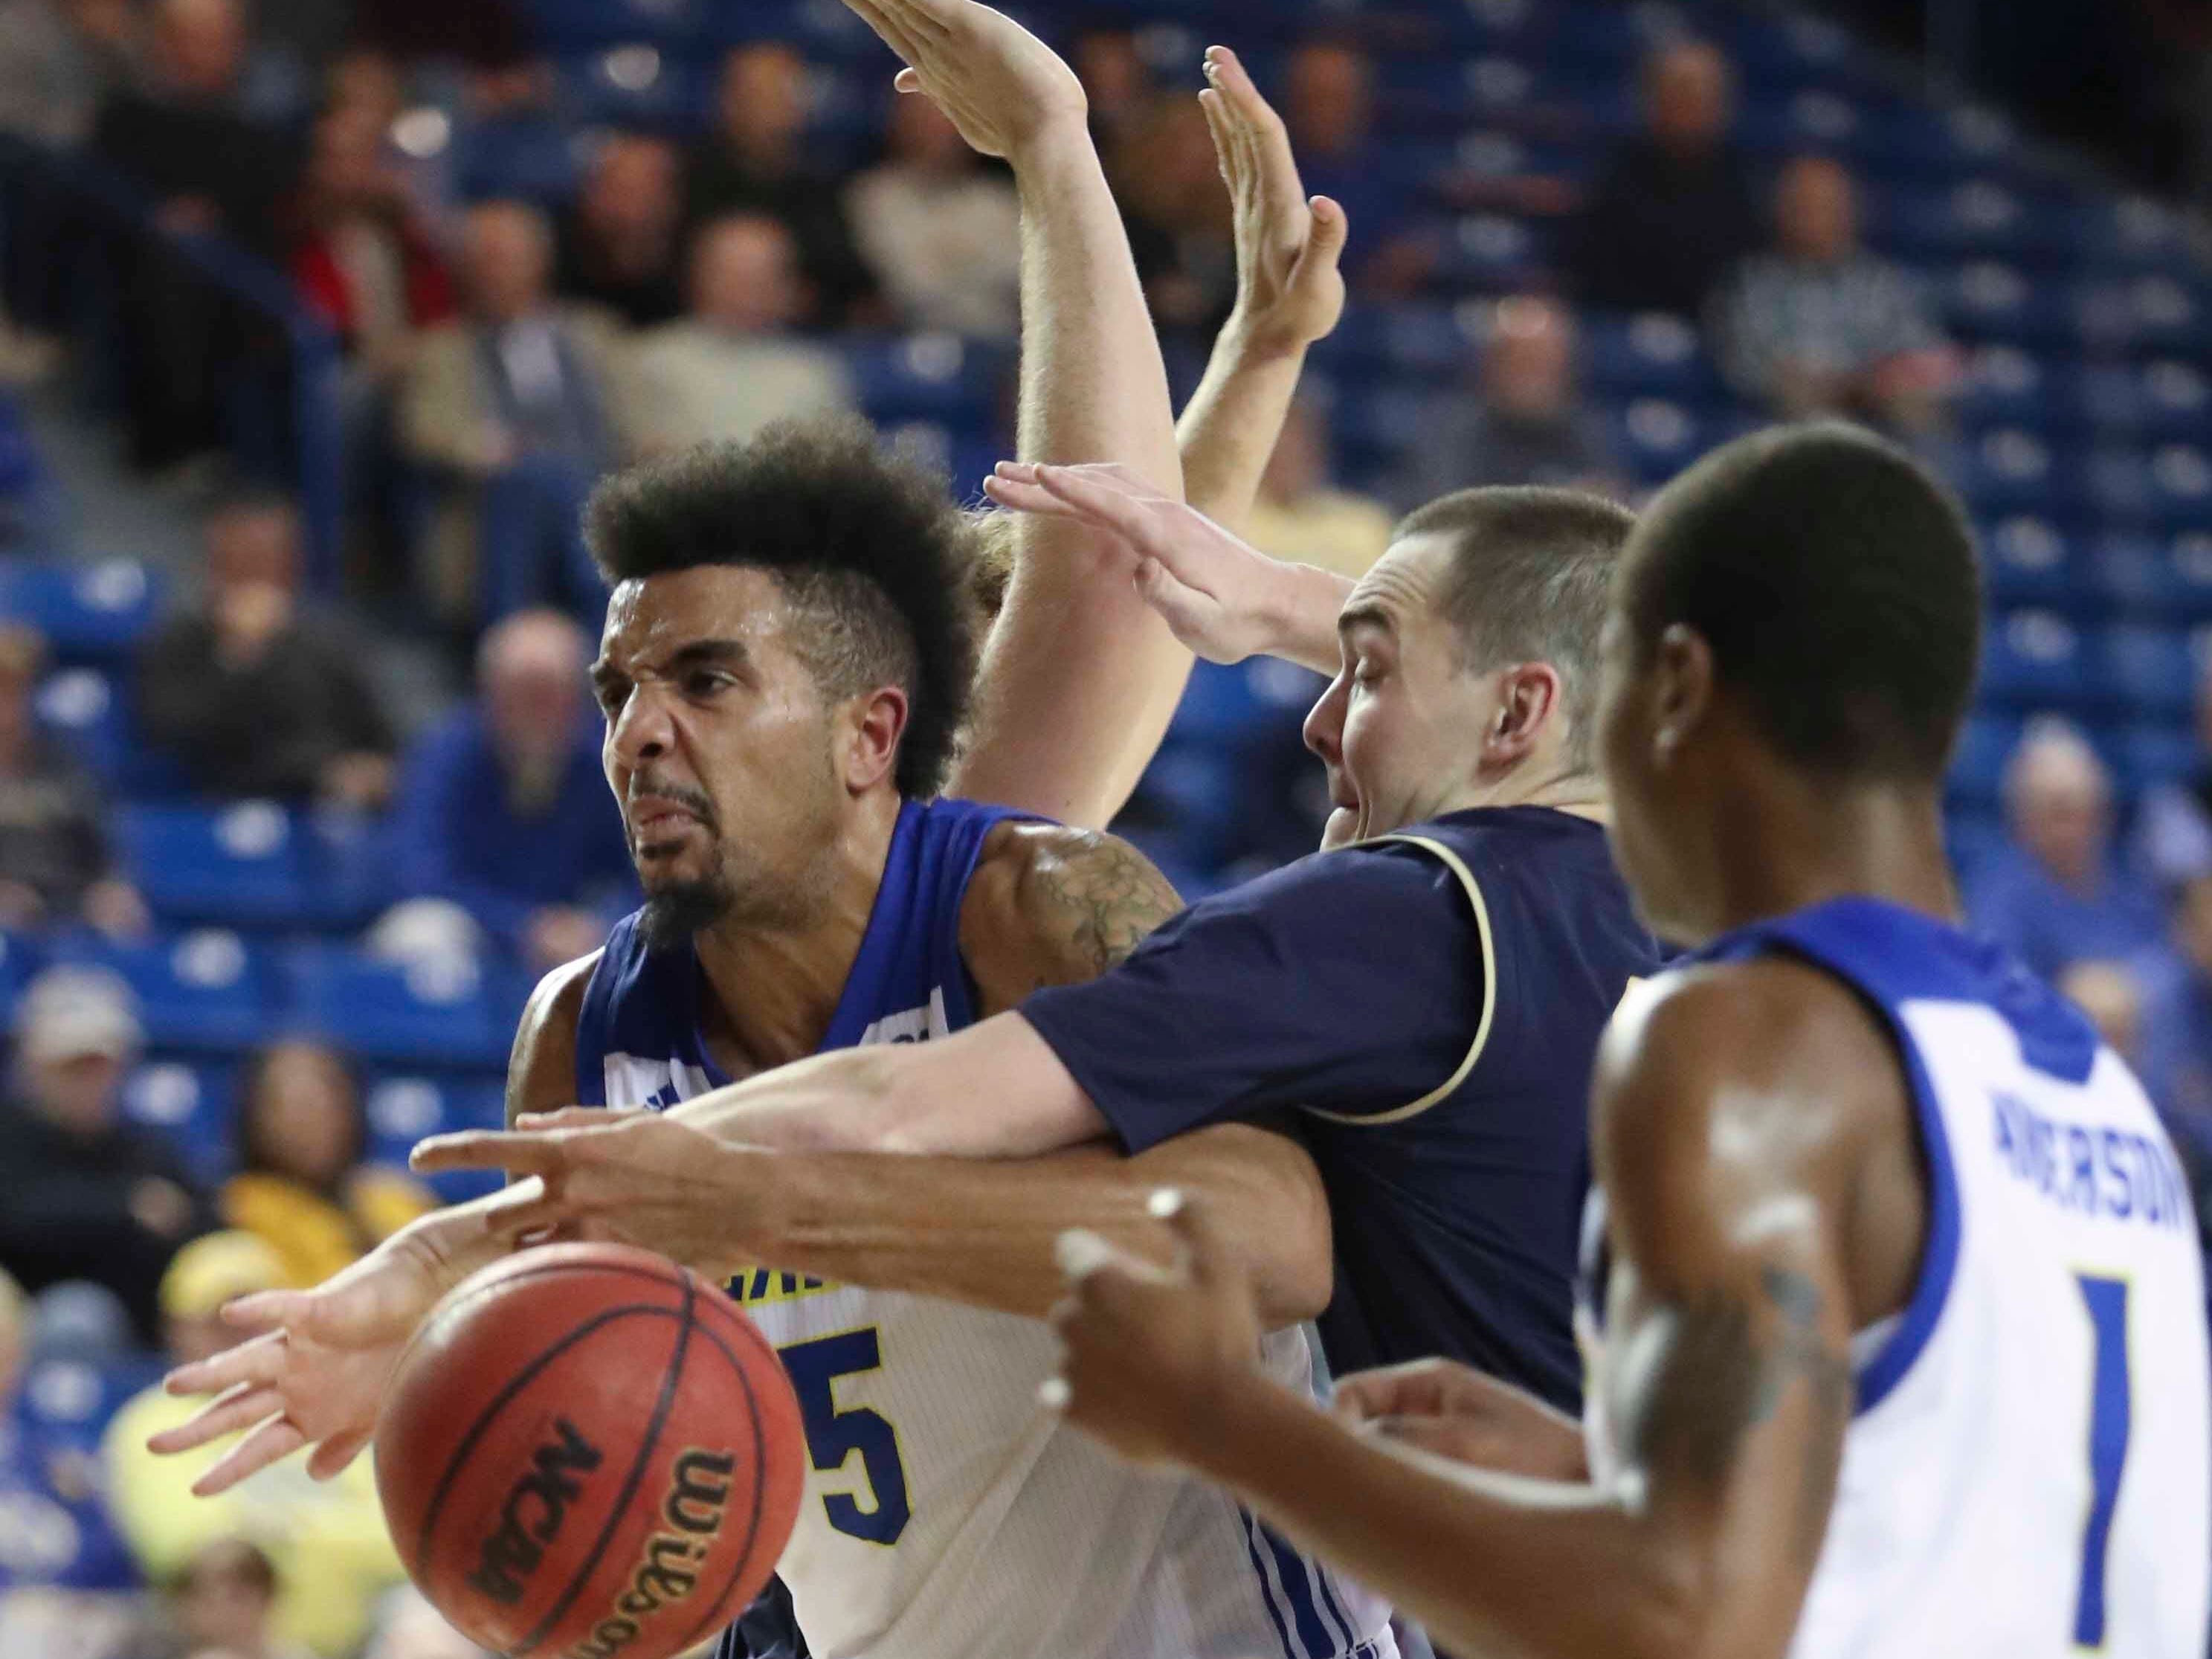 Delaware's Eric Carter (left) is fouled by Navy's George Kiernan in the second half of Delaware's 80-65 loss at the Bob Carpenter Center Wednesday.